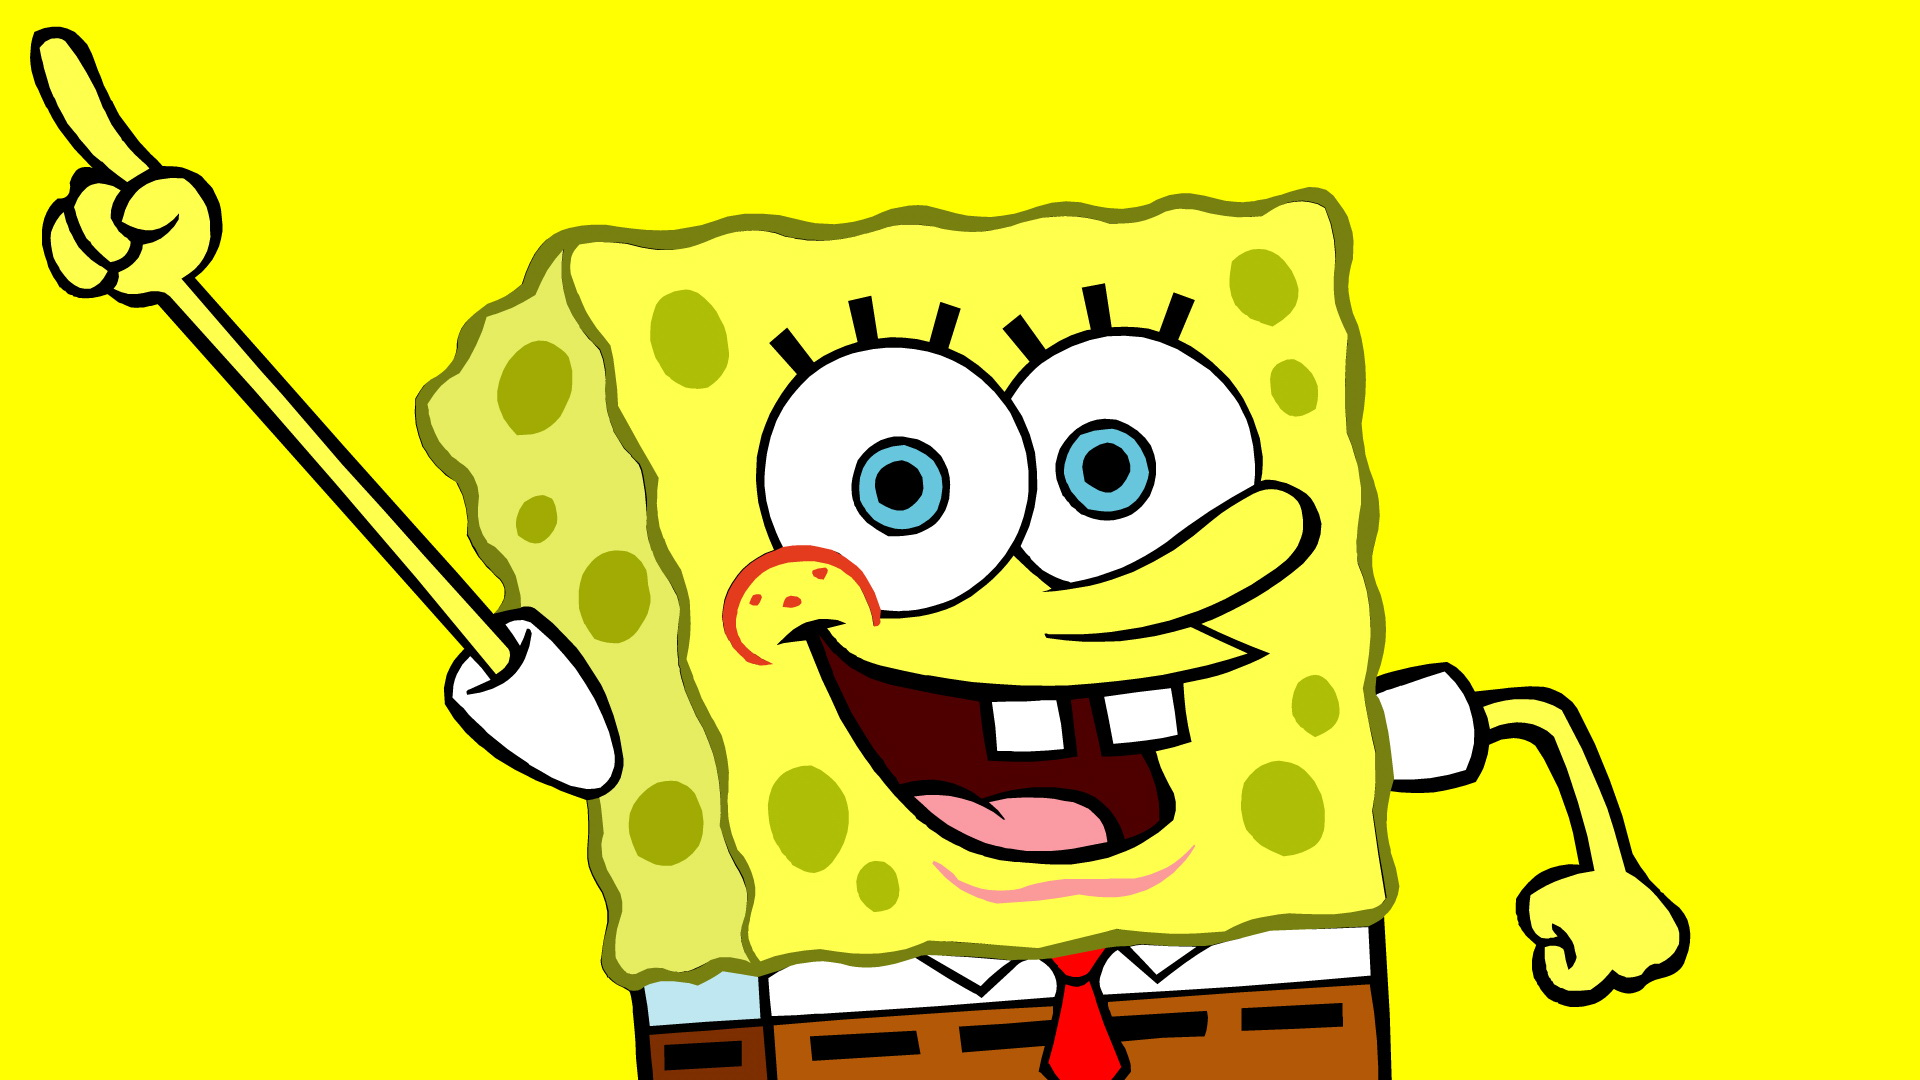 Spongebob Wallpapers Pictures Images